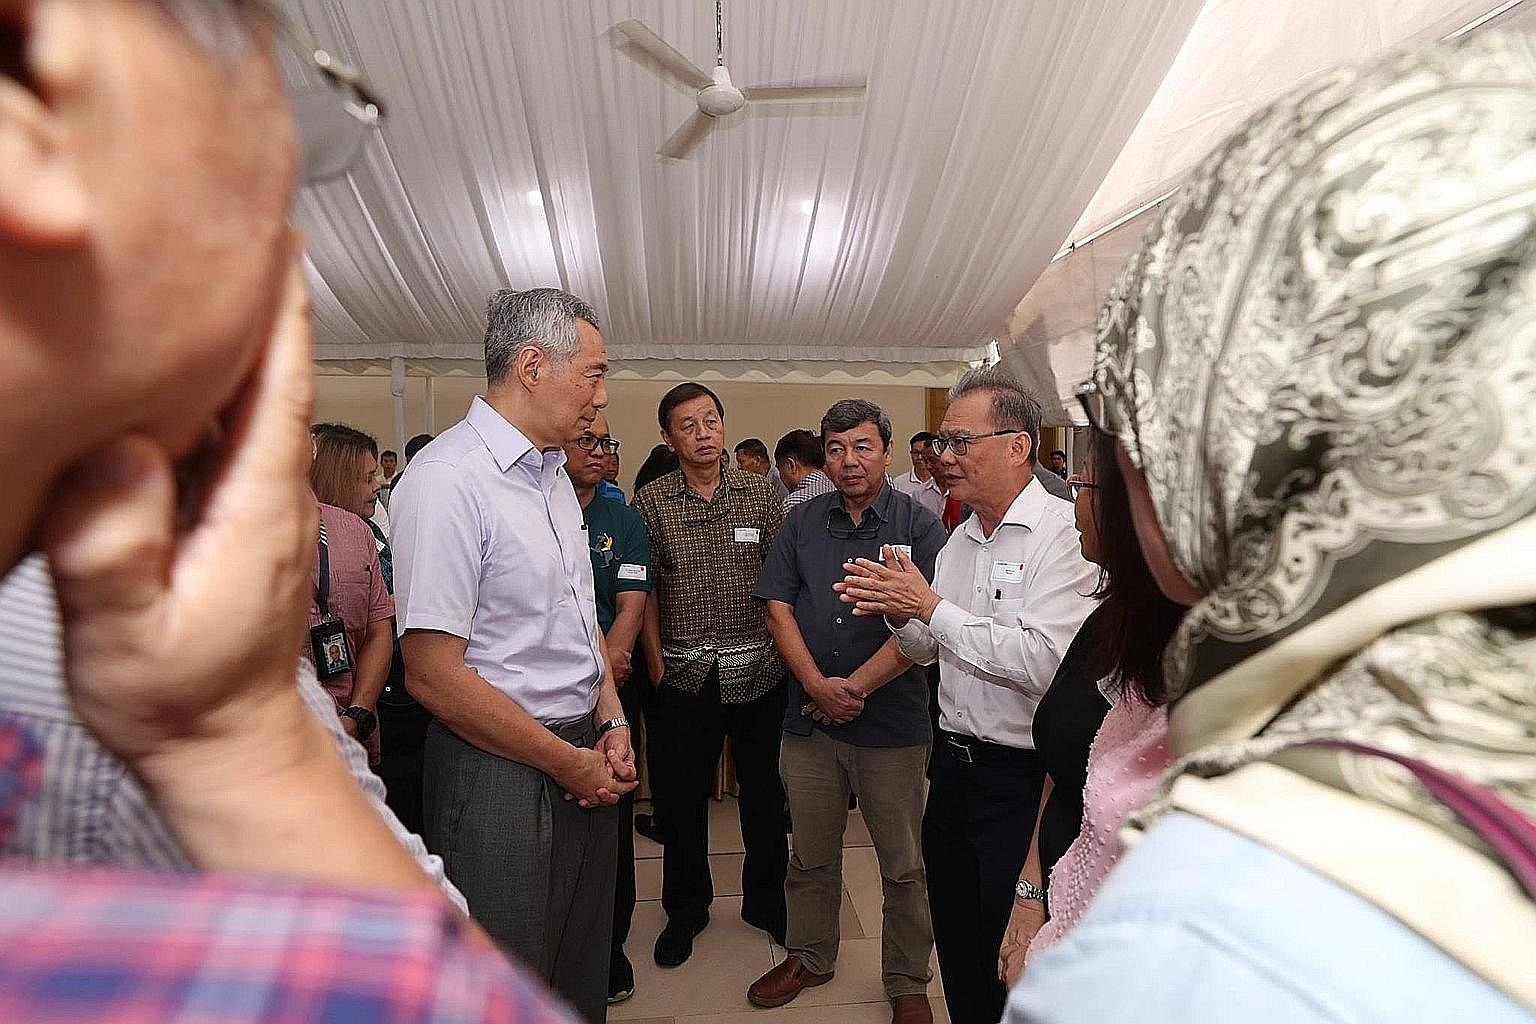 Prime Minister Lee Hsien Loong speaking to attendees of a closed-door post-National Day Rally dialogue organised by the People's Association on Oct 14, at a reception after the event.